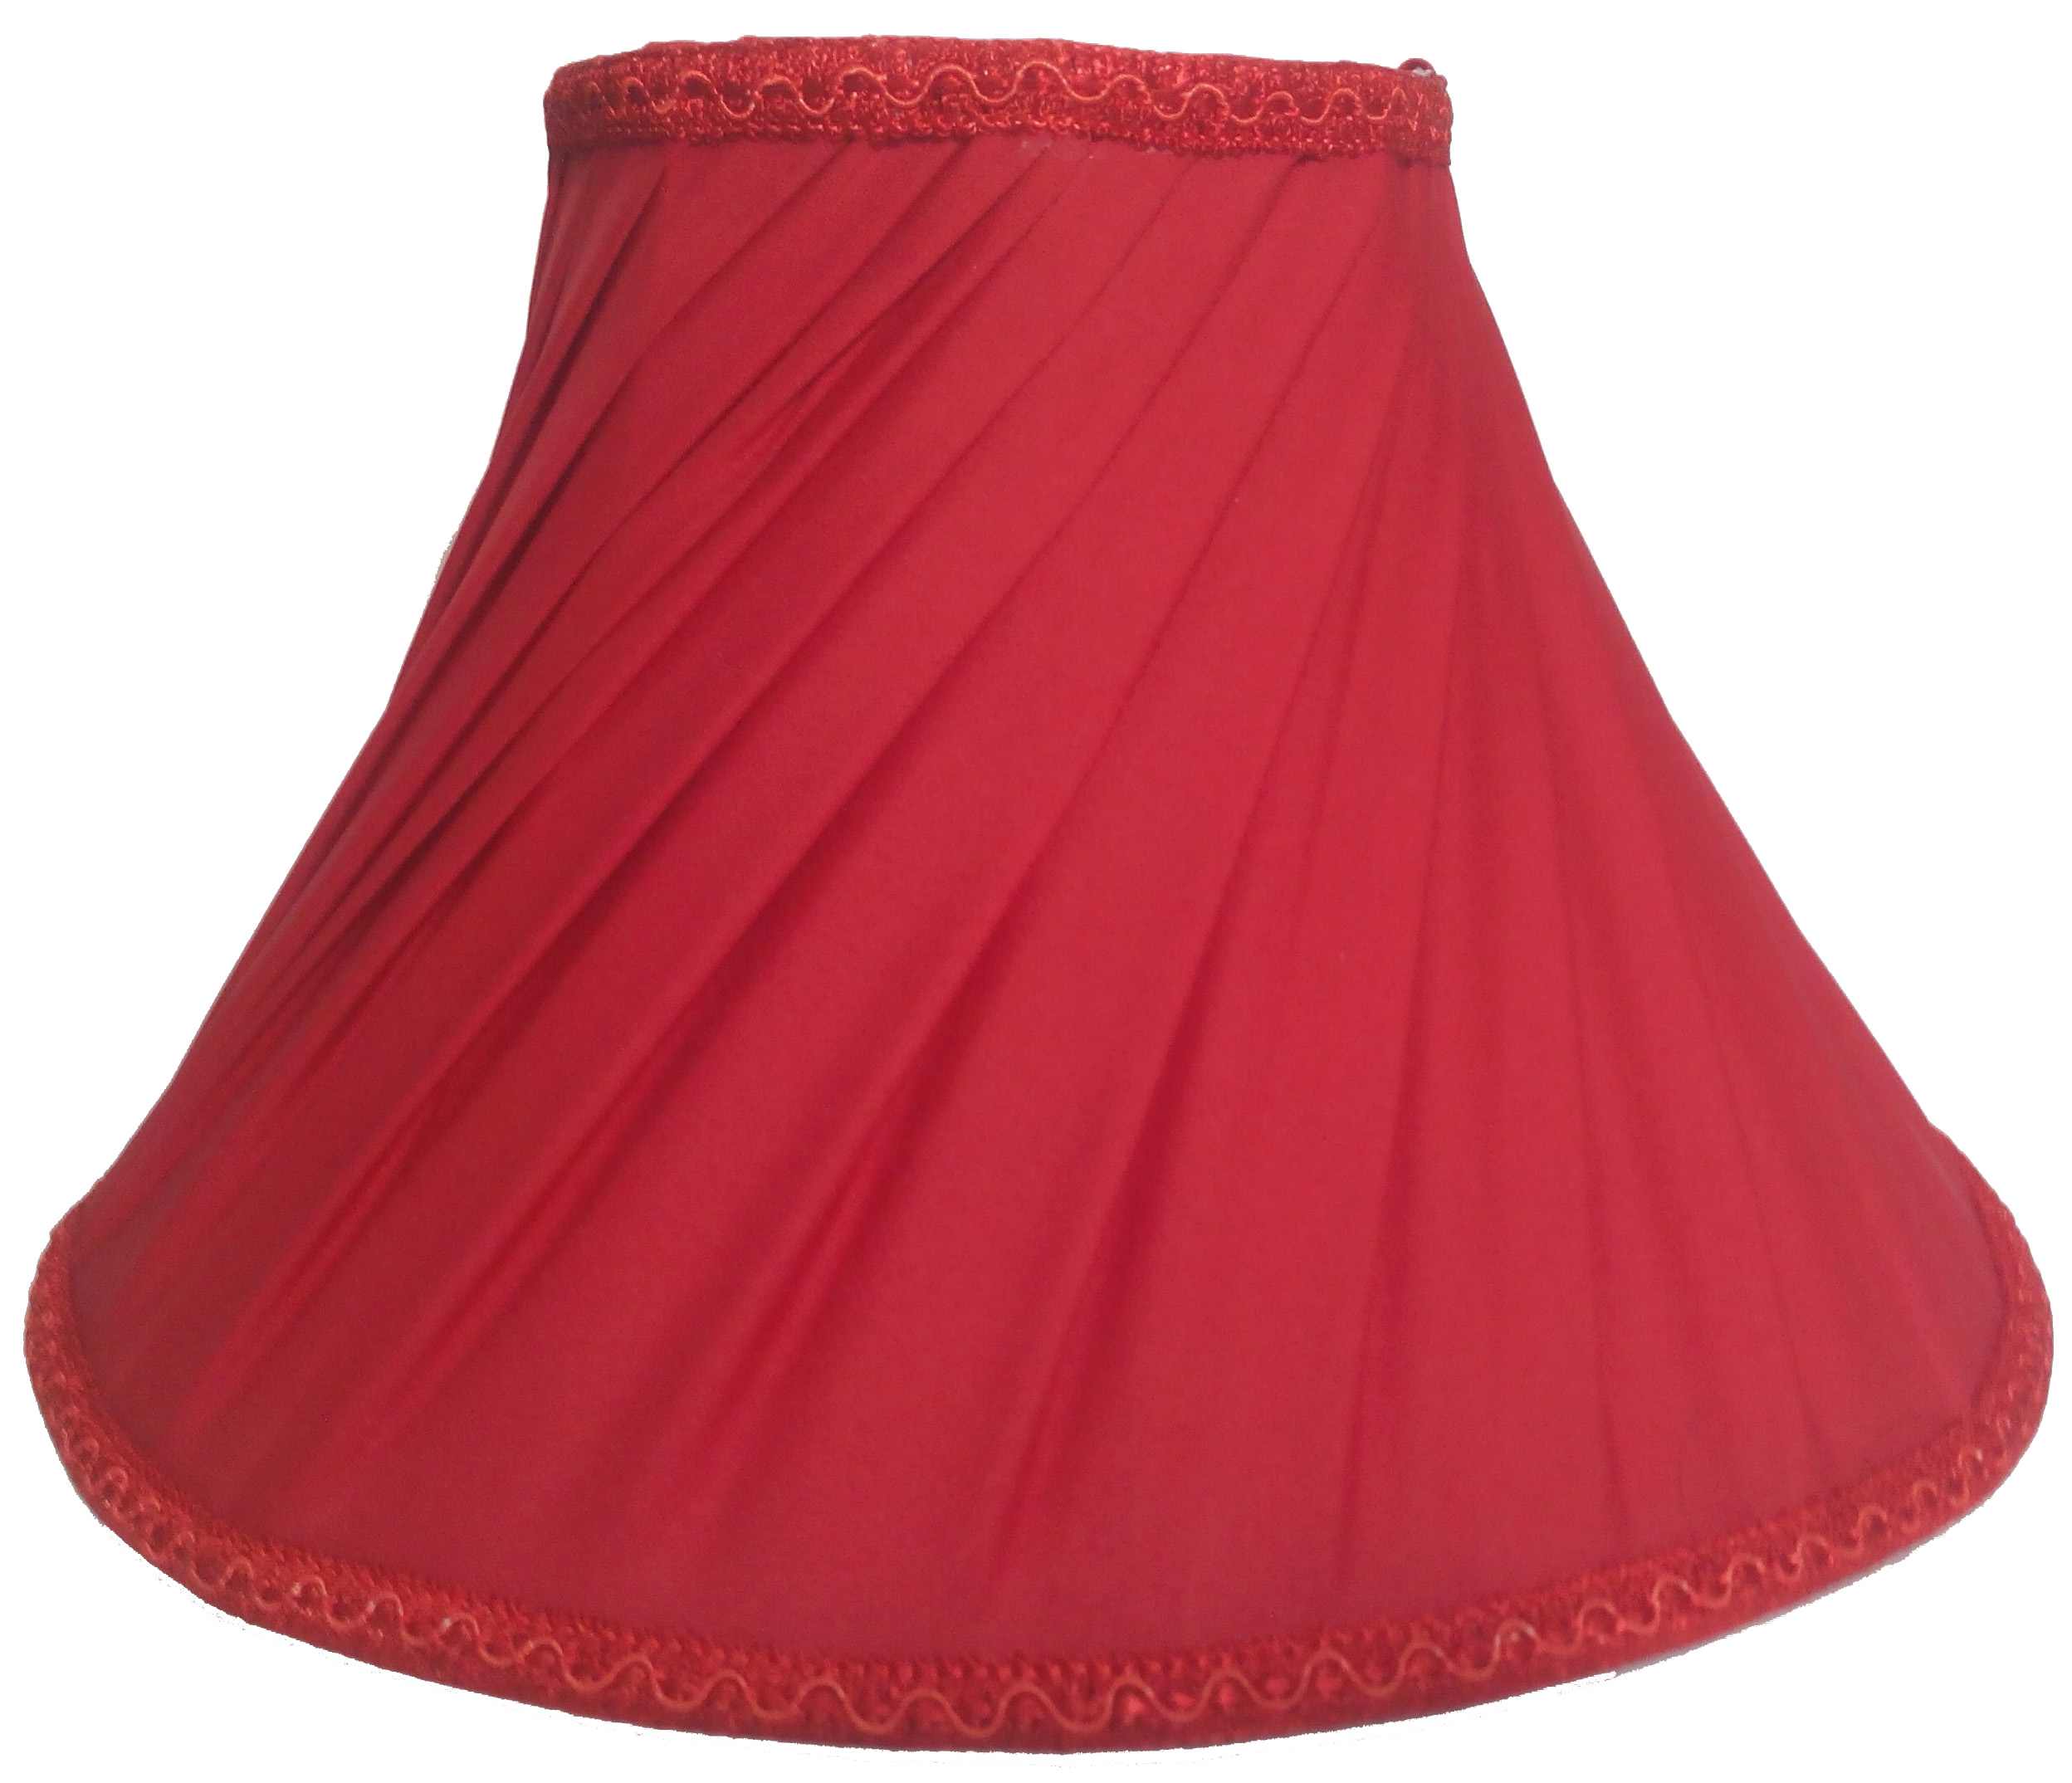 RDC 12 Inches Round Slanting Pleated Red with Lace Border Lamp Shade for Table Lamp